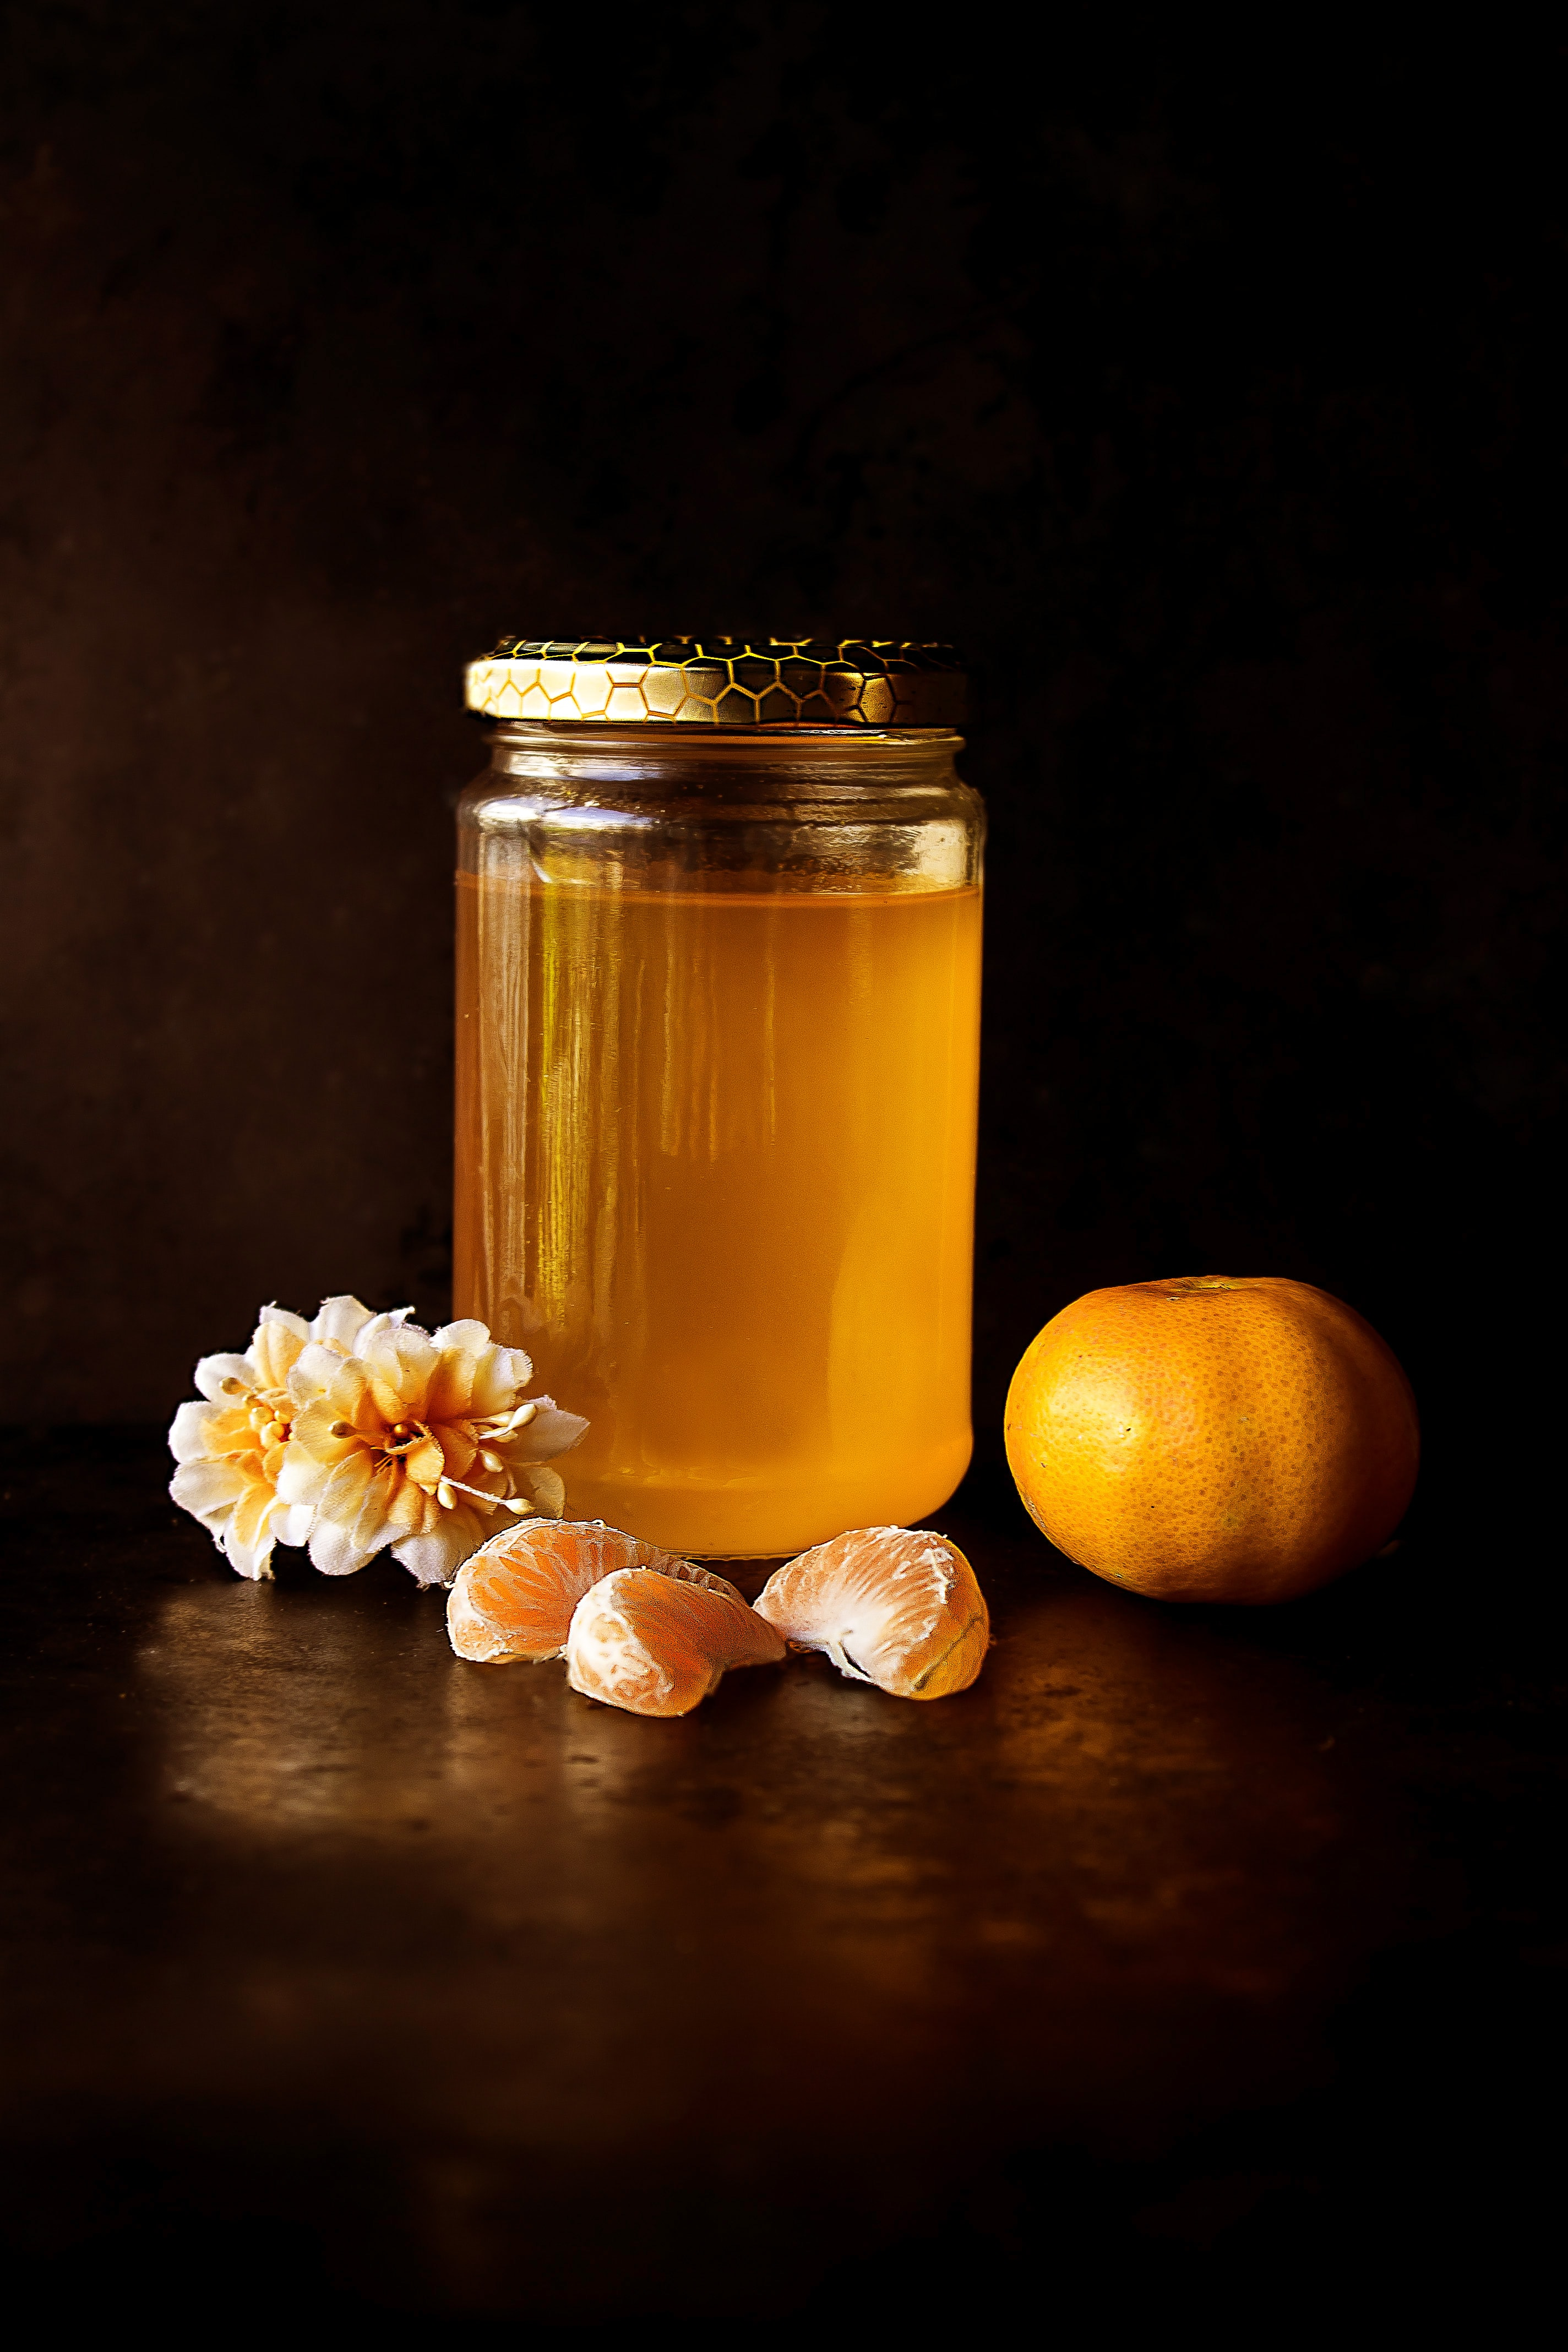 Homemade jar of honey, orange clementine slices, and a flower blossom